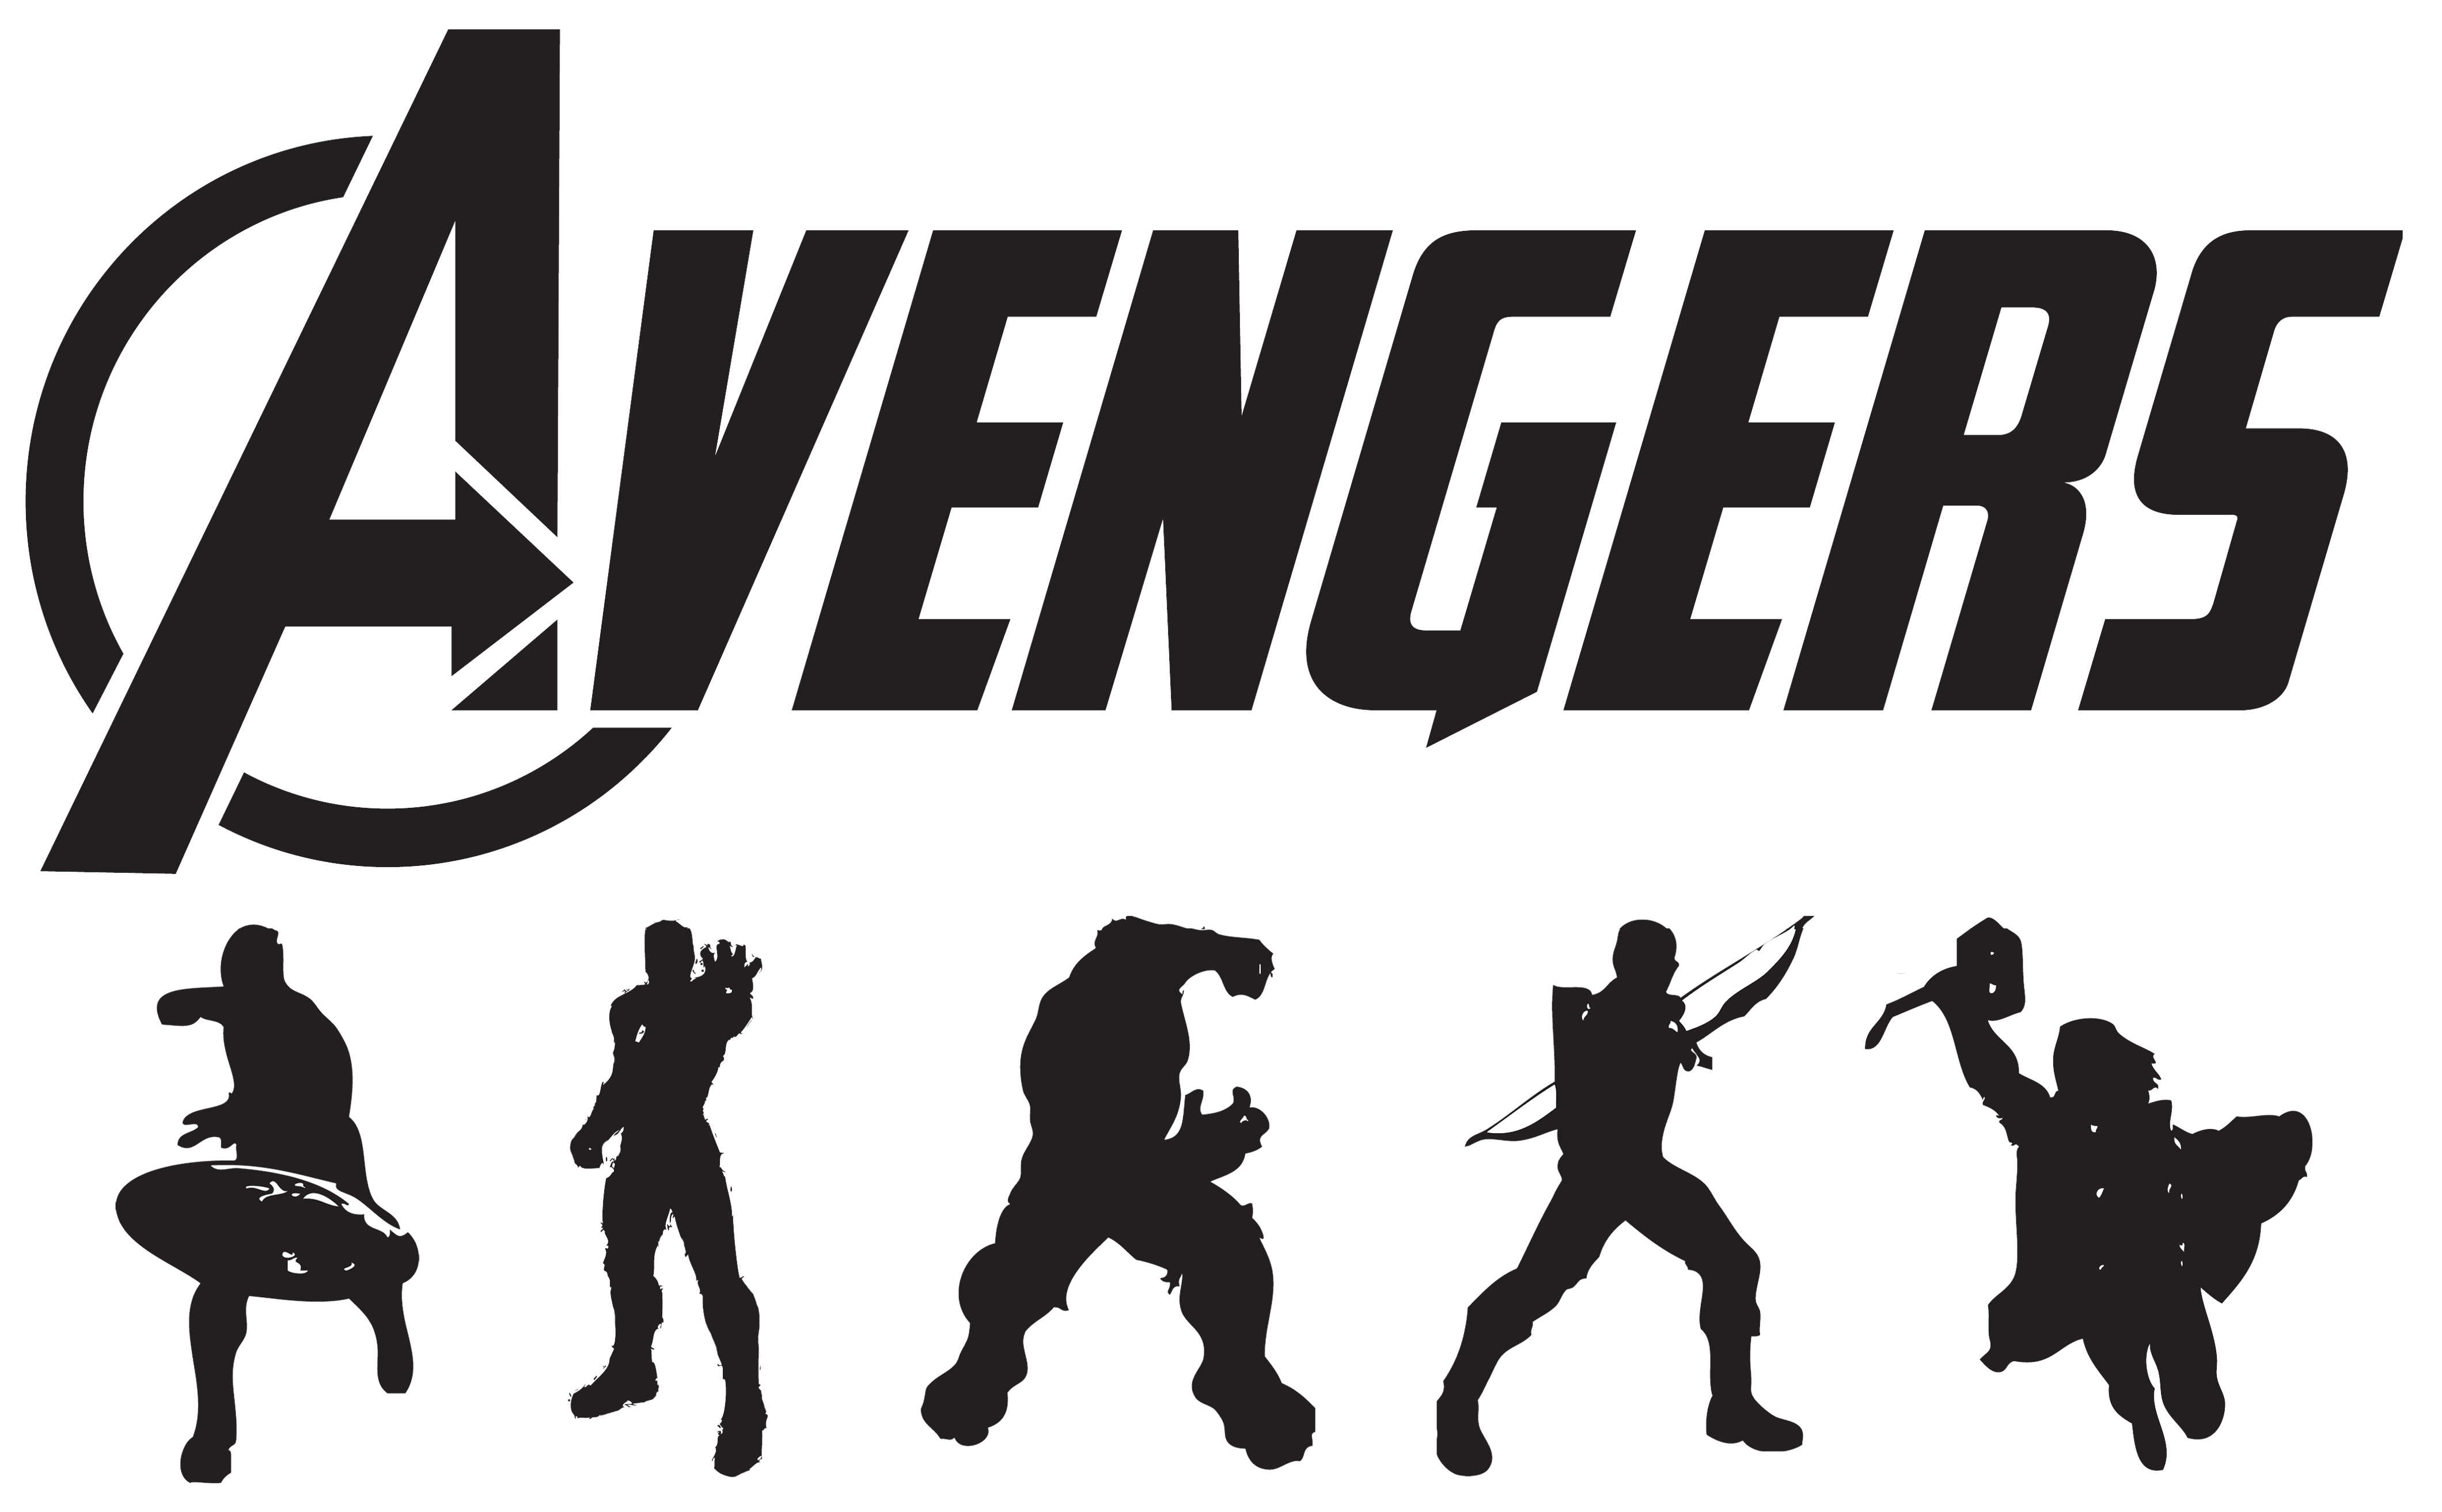 Hawkeye logo marvel clipart picture black and white Marvel Black And White Clipart - Clipart Kid picture black and white